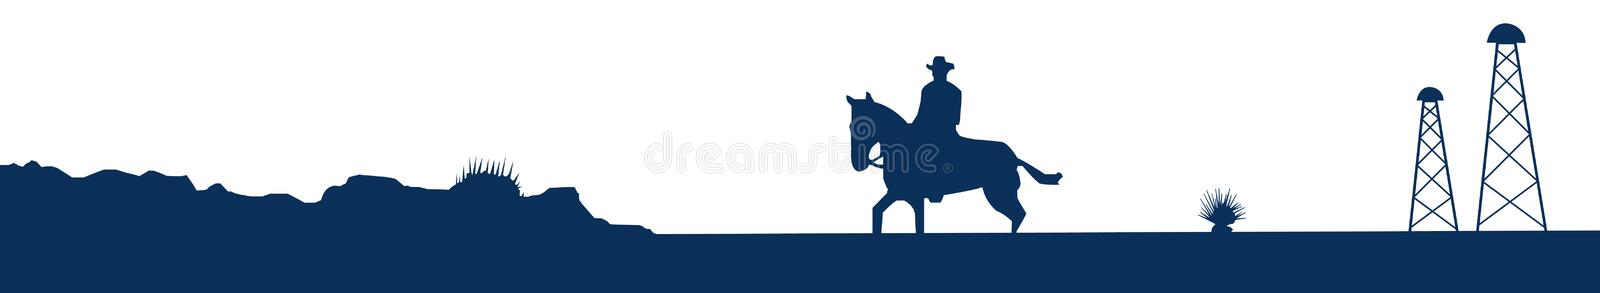 Texas skyline. Illustration of the typical skyline of the Great State of Texas: cowboy, desert and oil pump